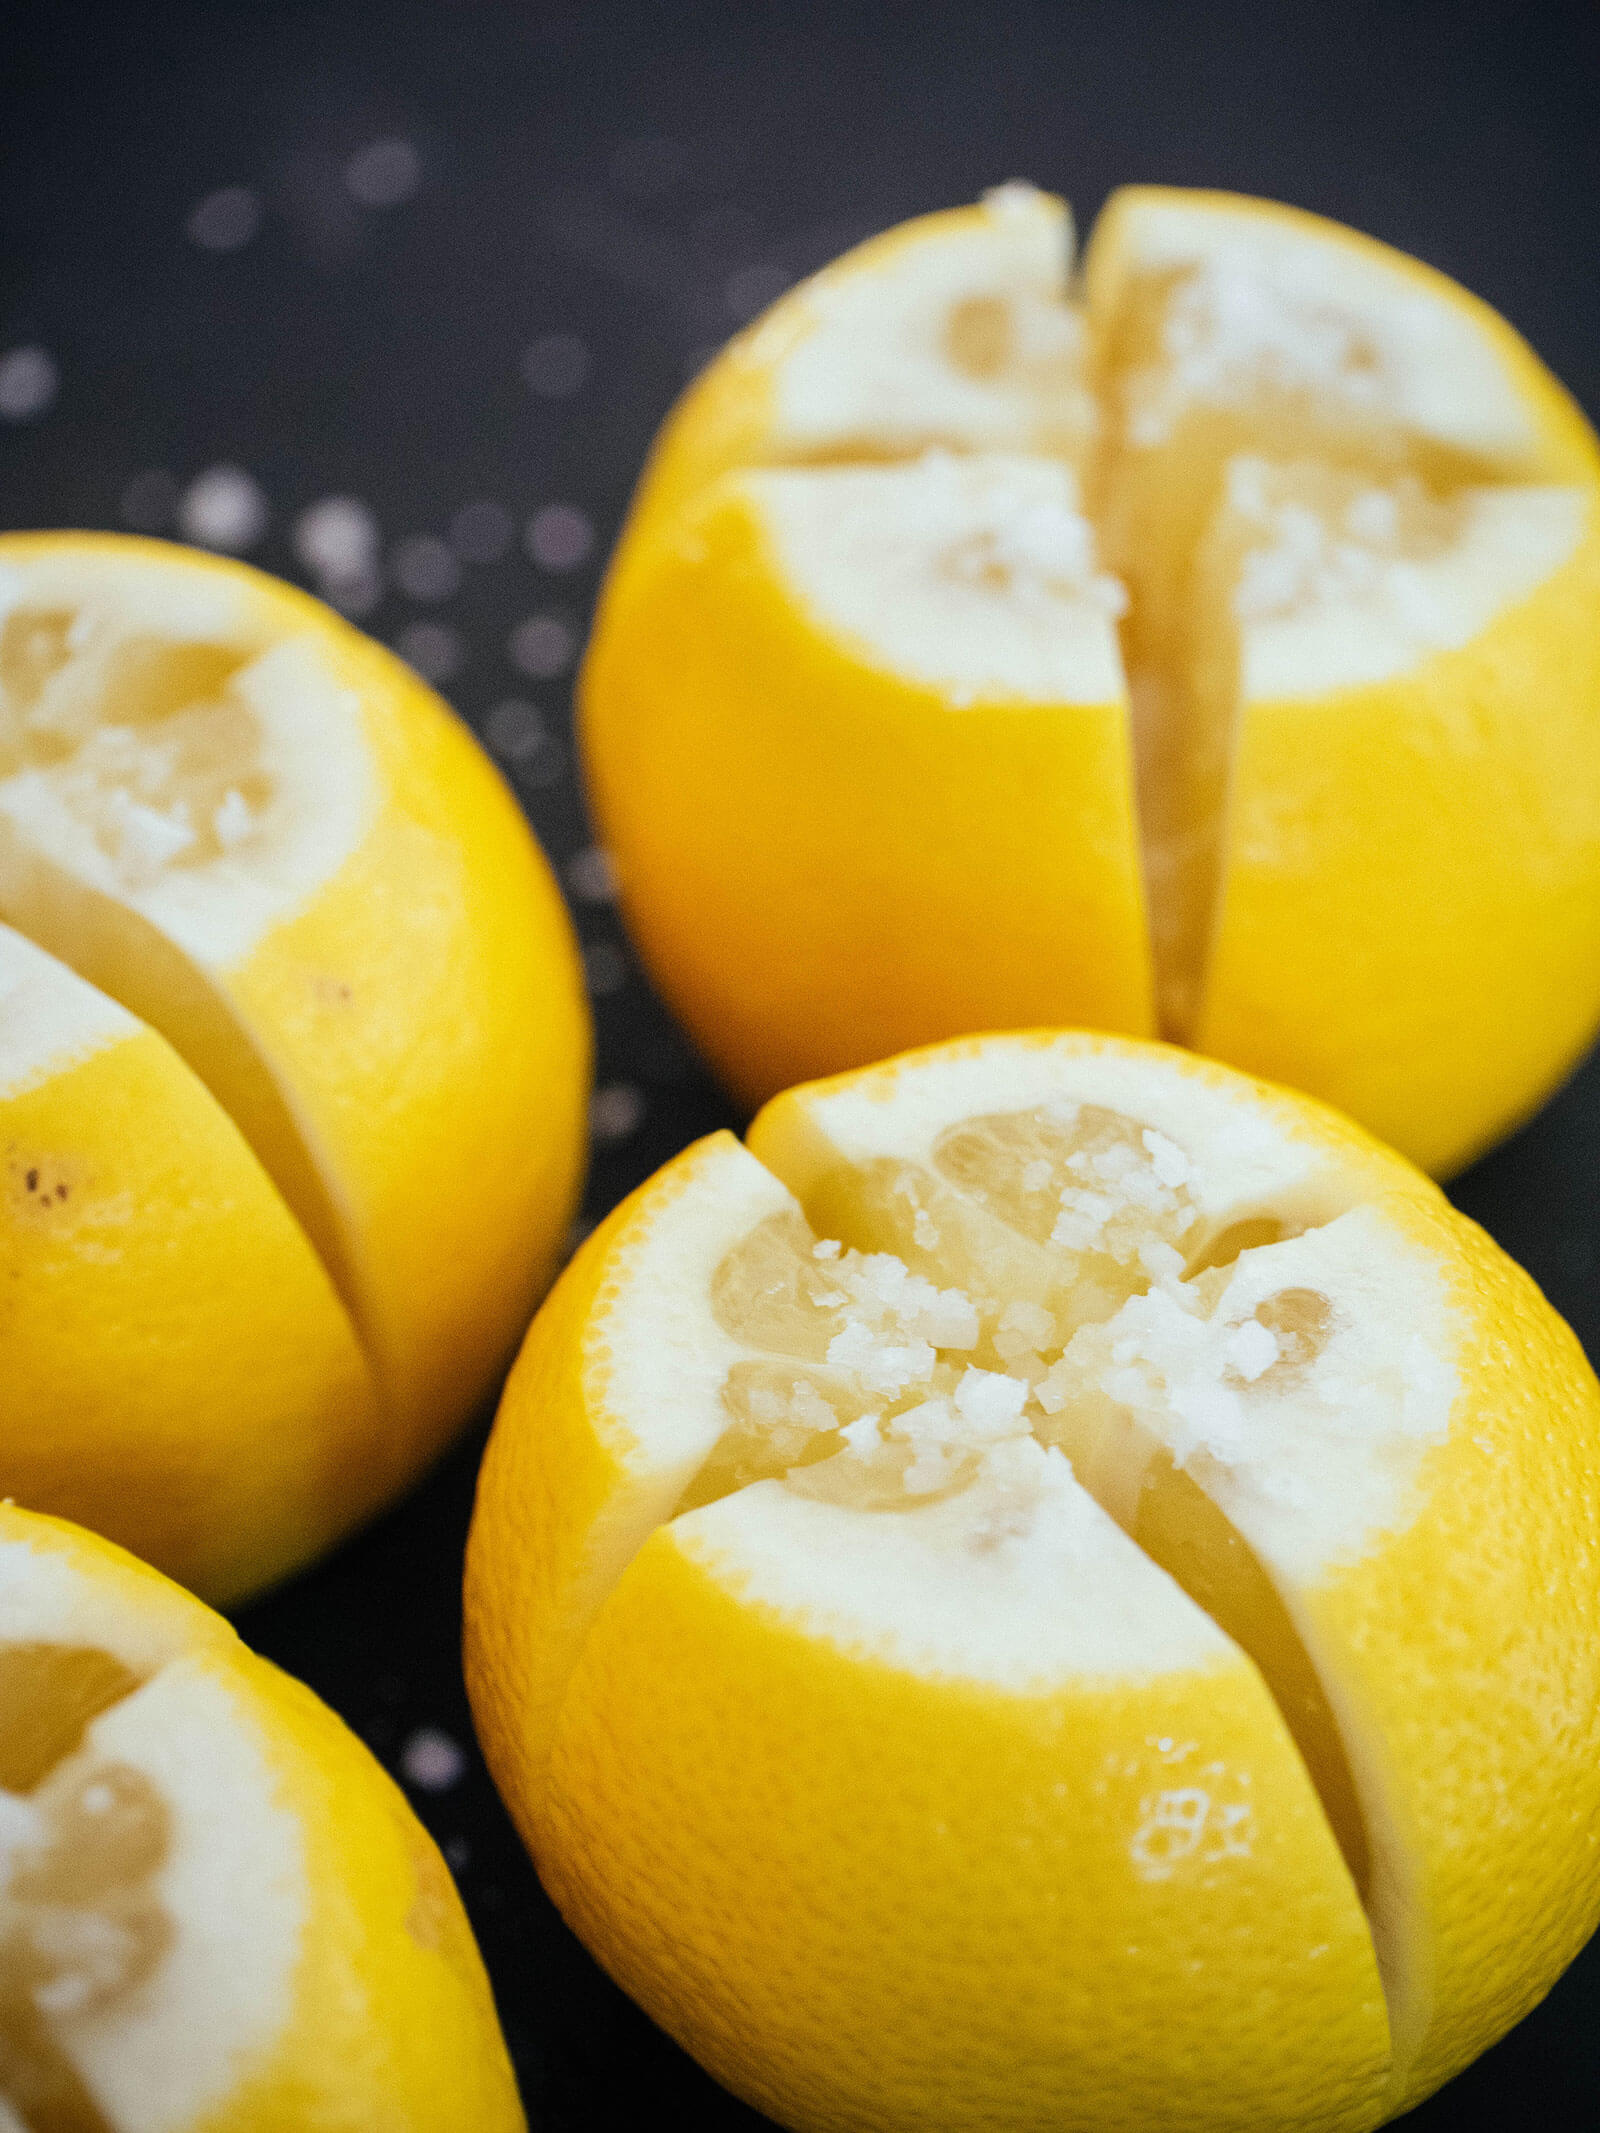 Whole lemons quartered and salted